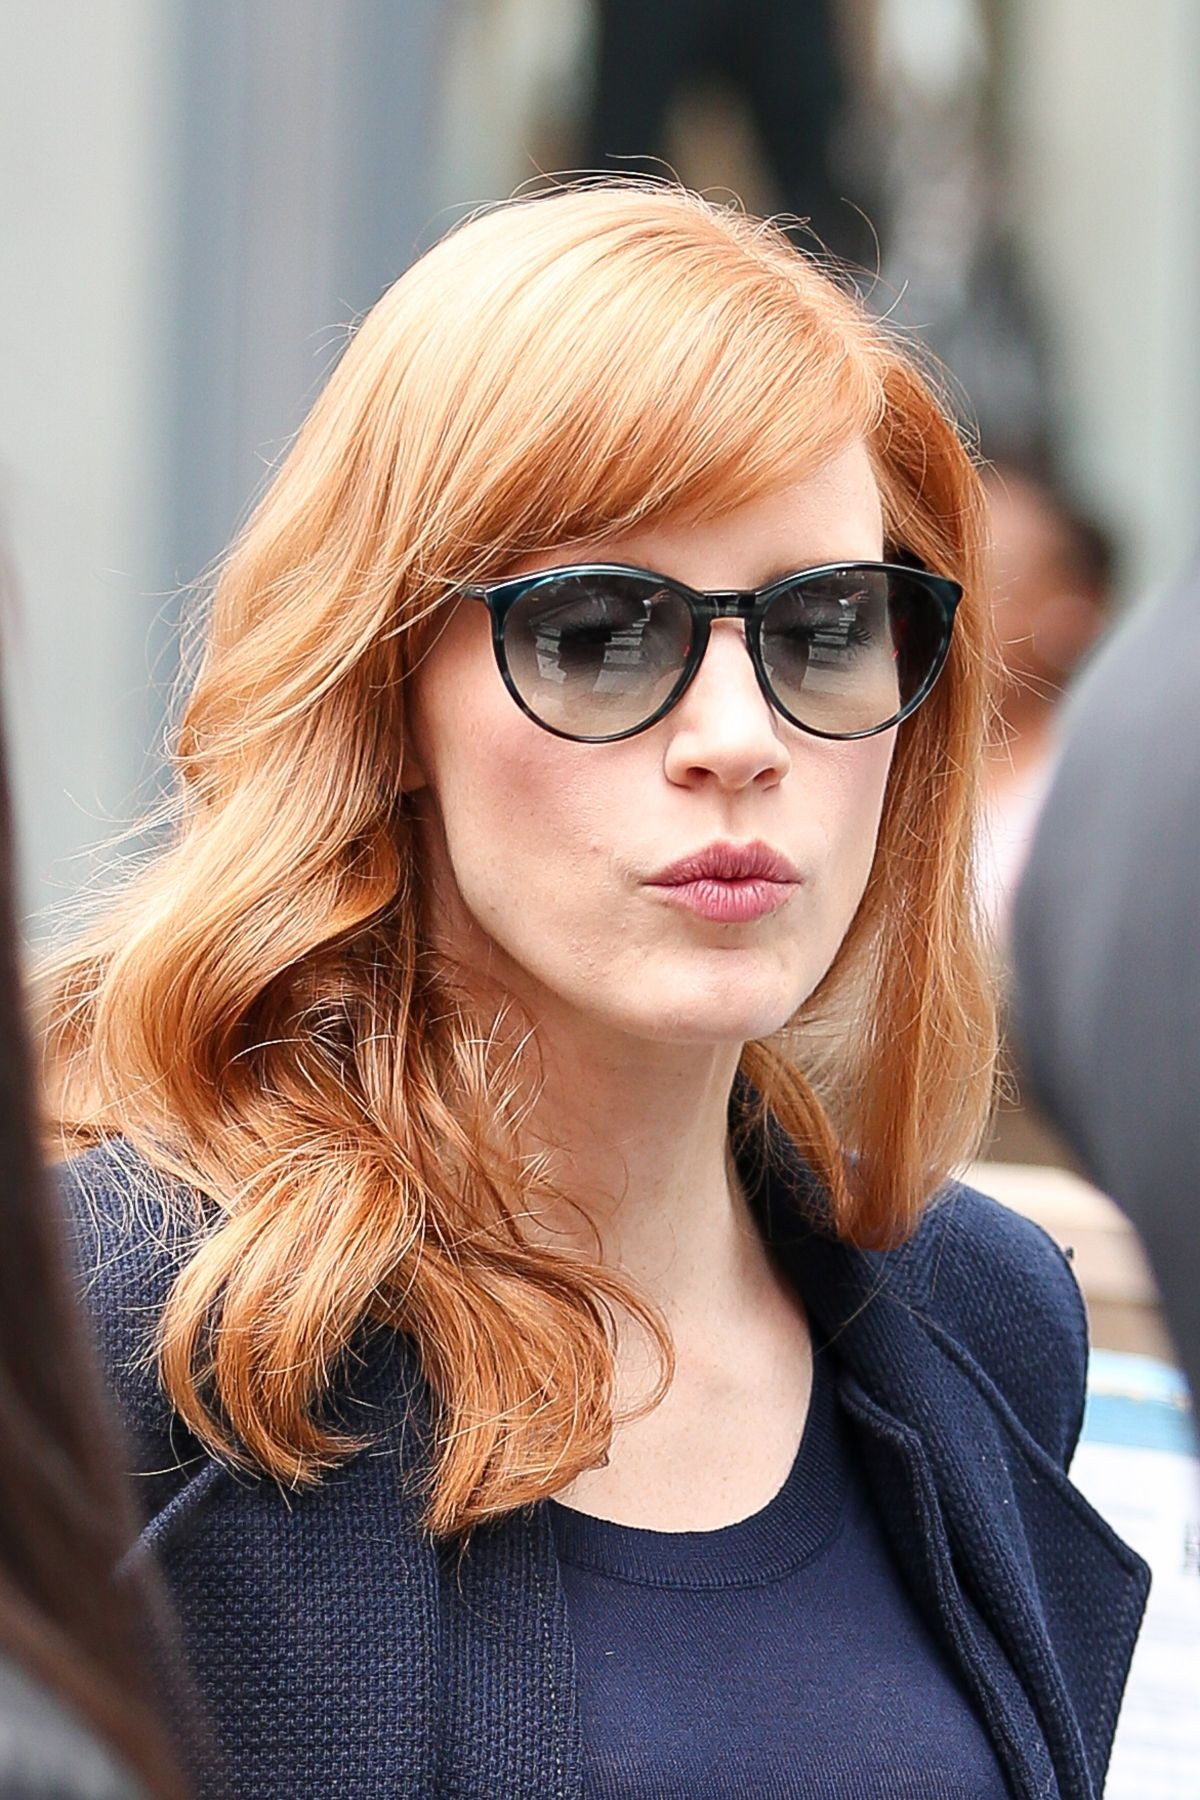 Jessica Chastain Leaving The MTV Studios In NYC